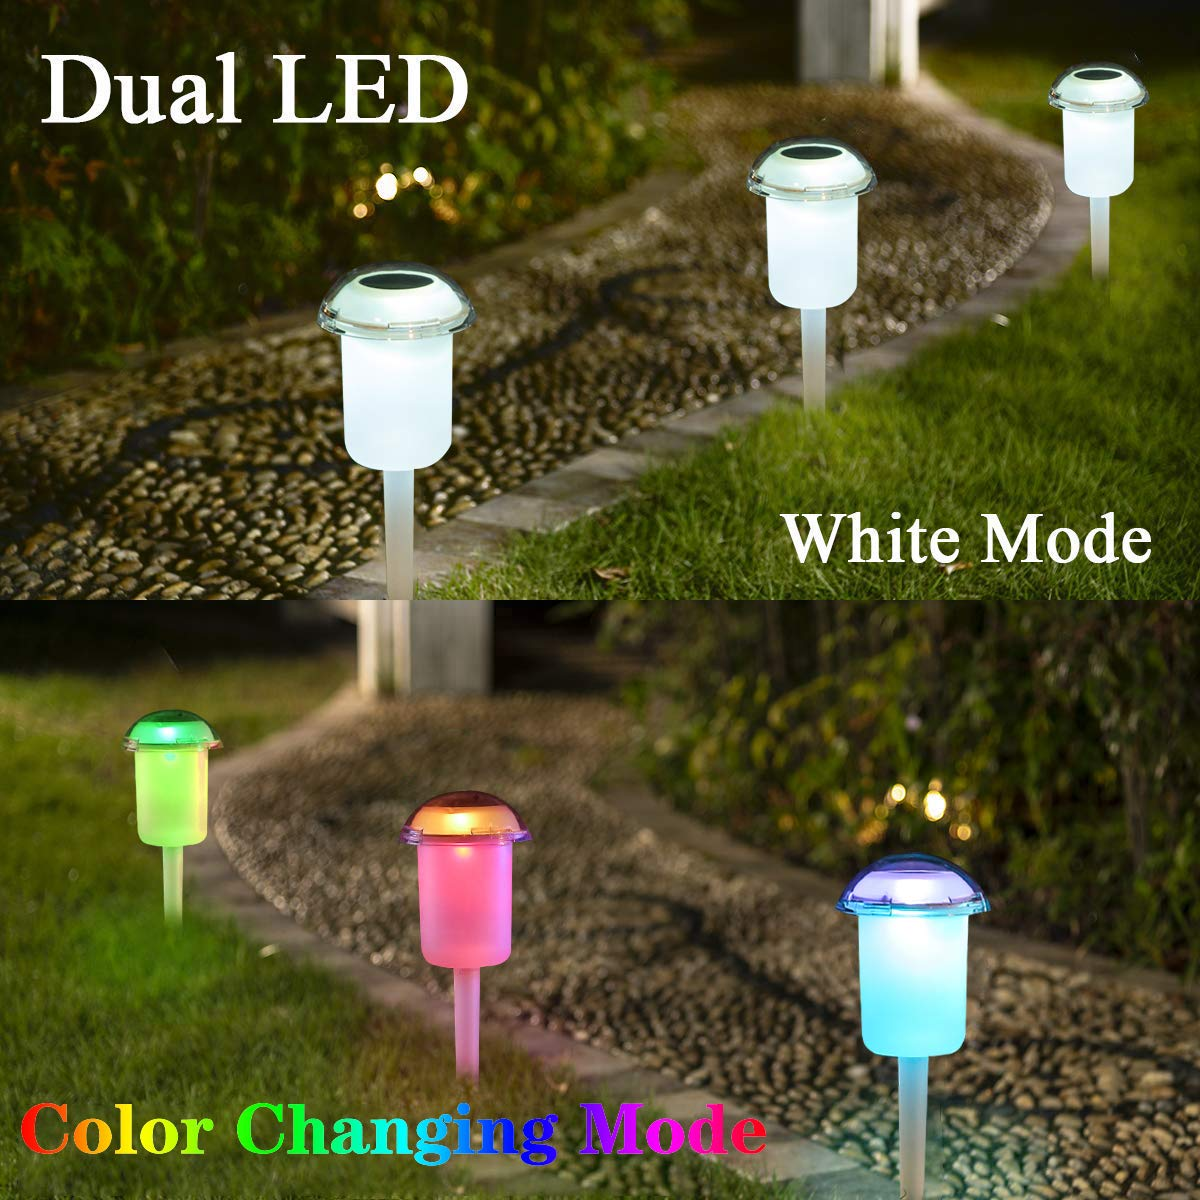 Obell Solar Lights Outdoor Dual Led Color Changing Solar Garden Lights  Waterproof Landscape Lighting for Patio Yard Lawn Walkway Driveway  (style4-4pack)